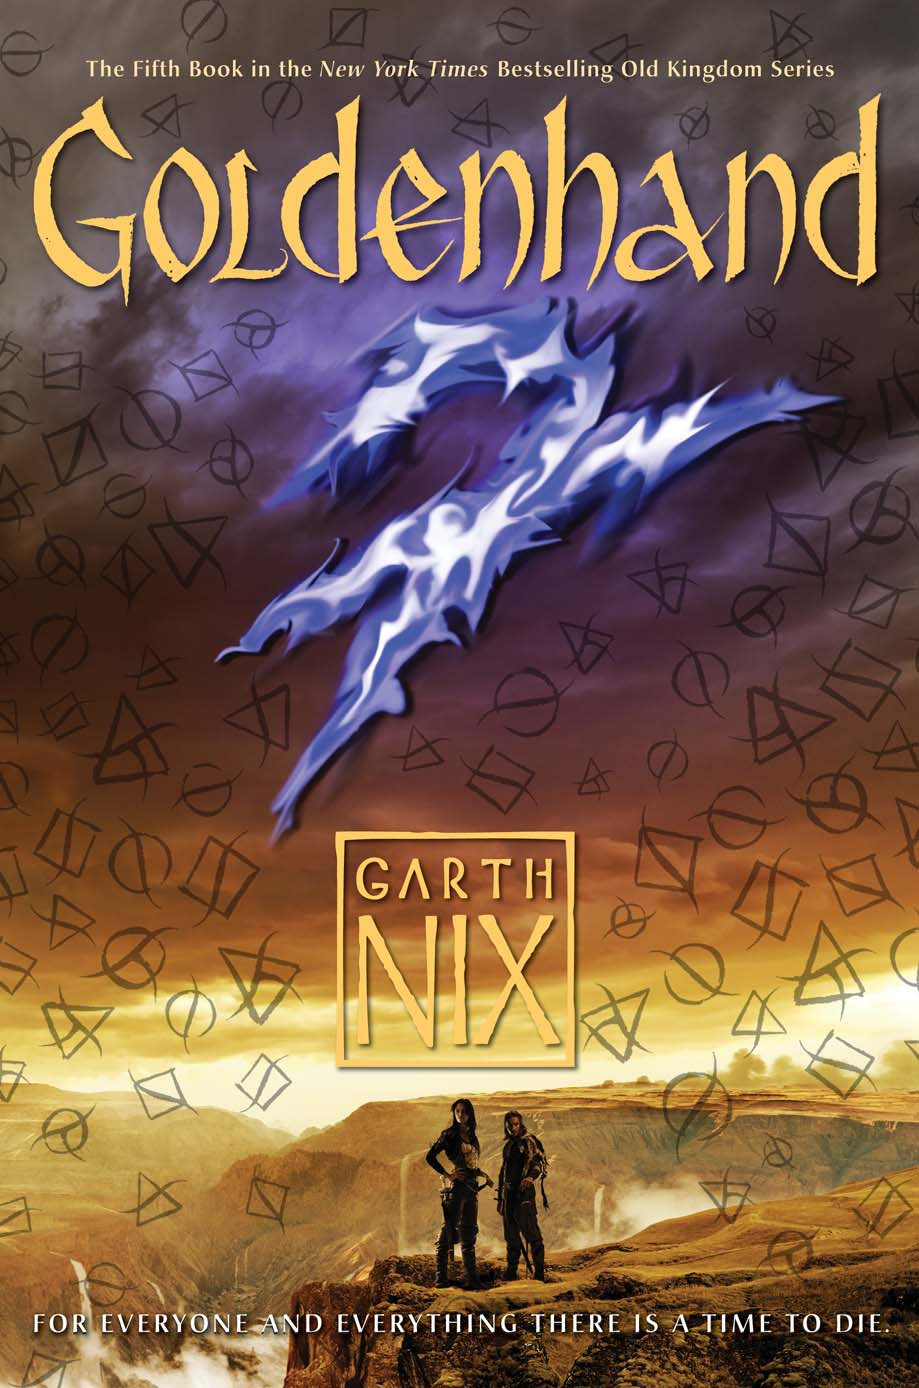 Garth Nix's latest Goldenhand, image used with permission from Harper Collins